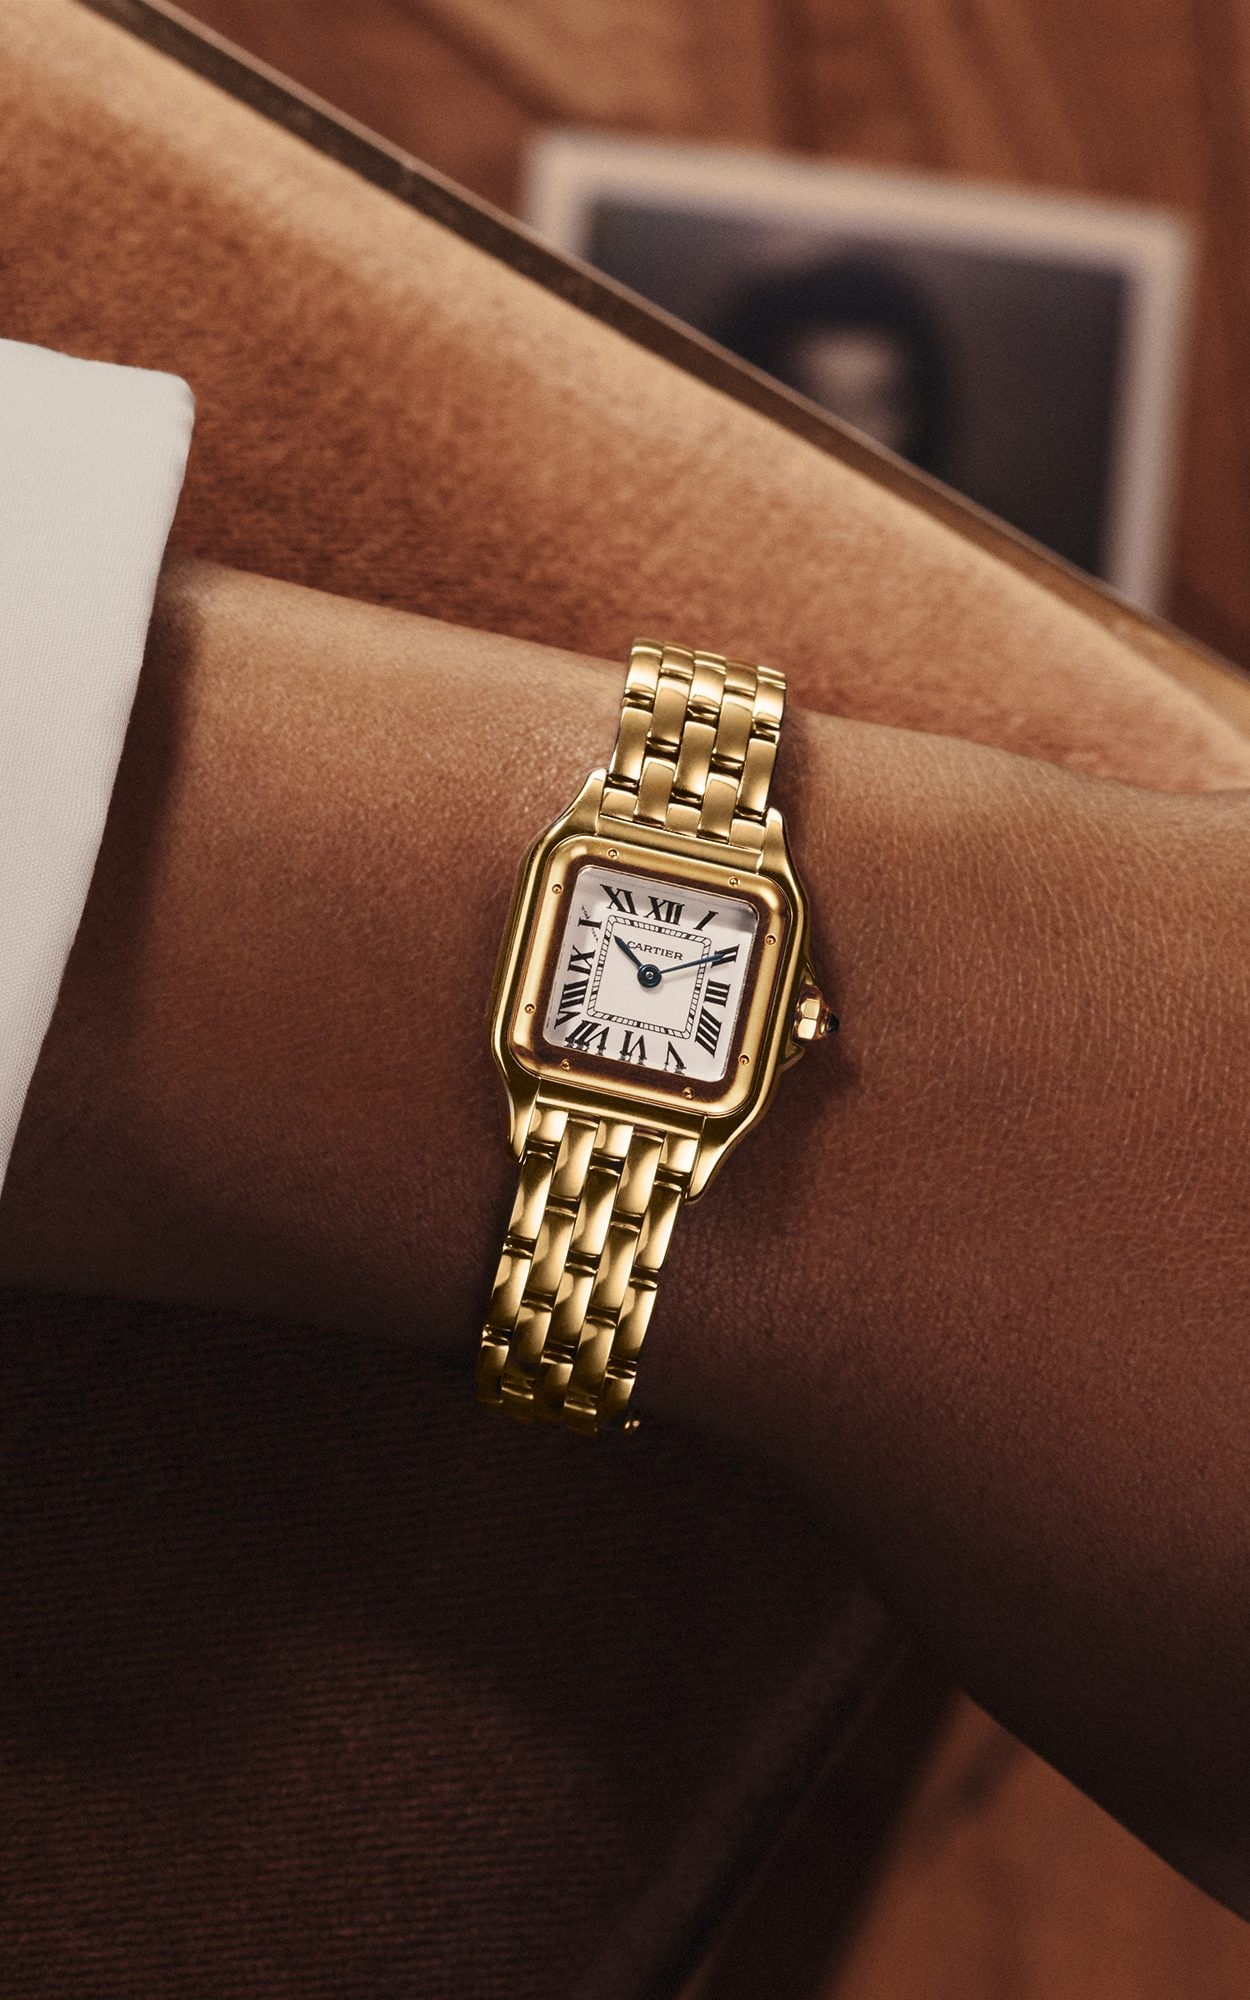 The new Panthere de Cartier is available to buy at Net a Porter from     The relaunched Panthere de Cartier watch will be available on Net a Porter